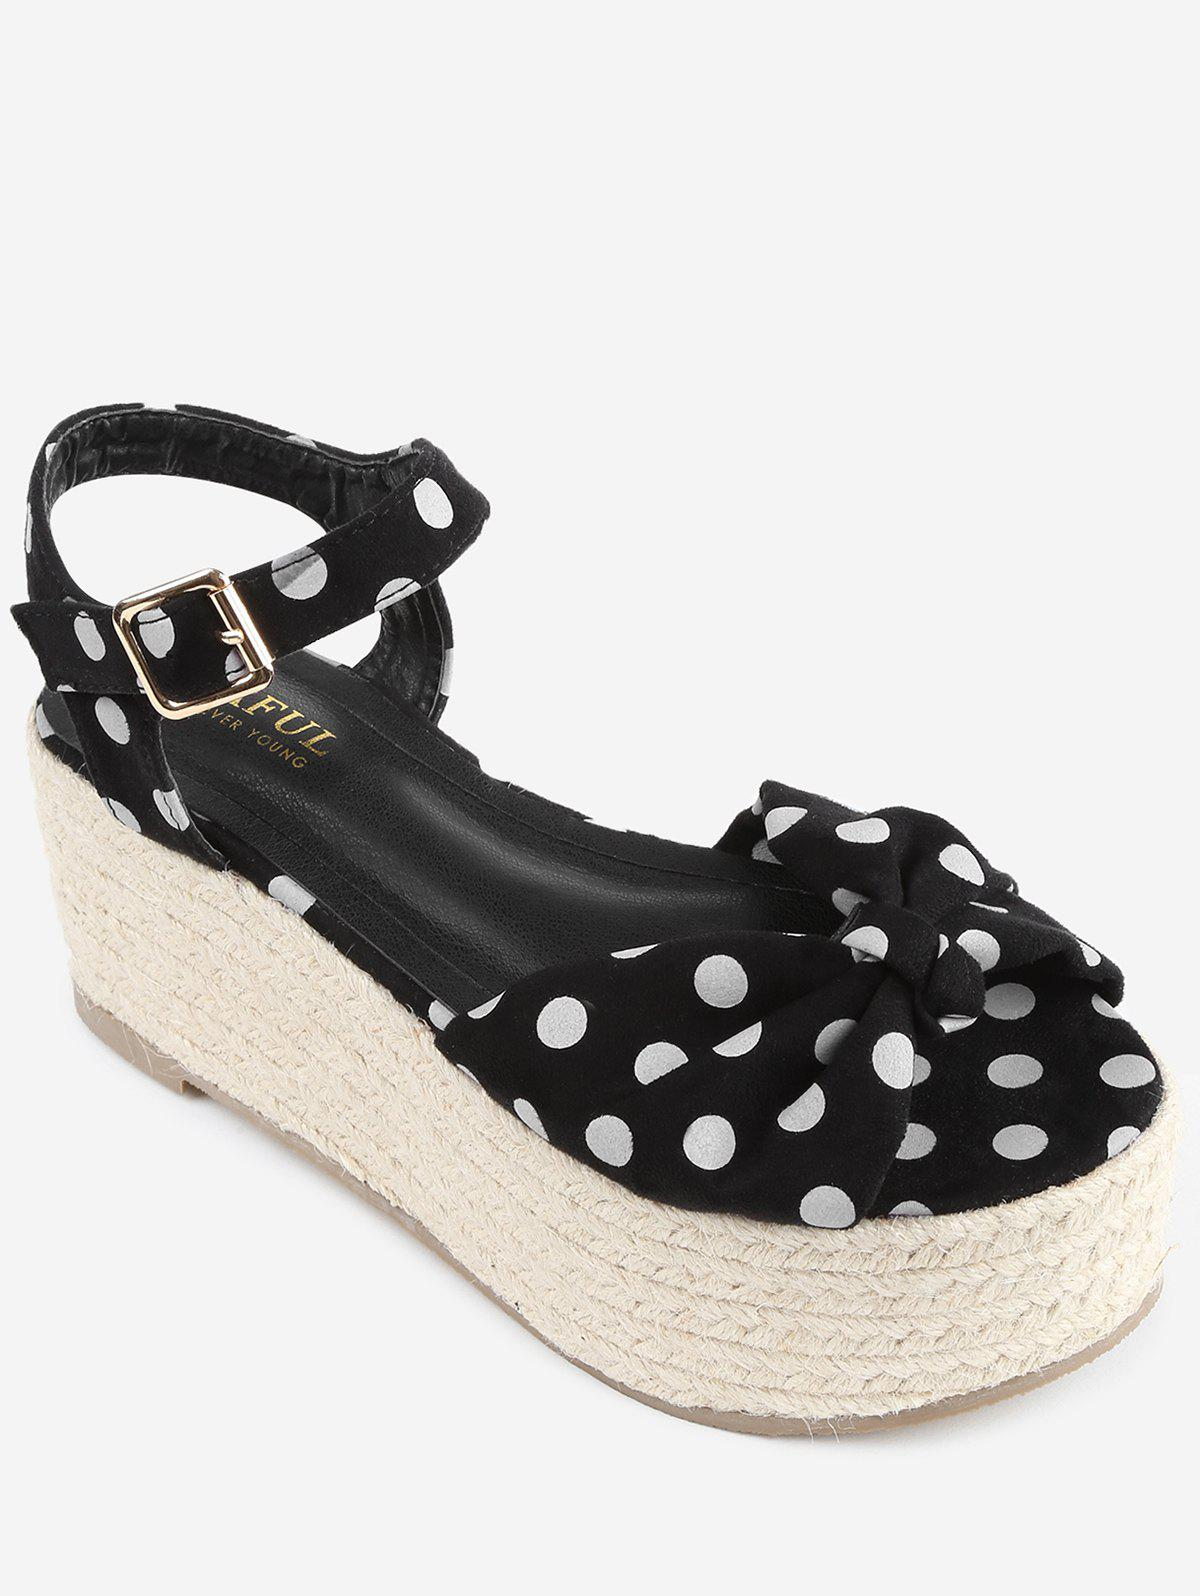 Polka Dot Espadrille Platform Sandals - BLACK 37